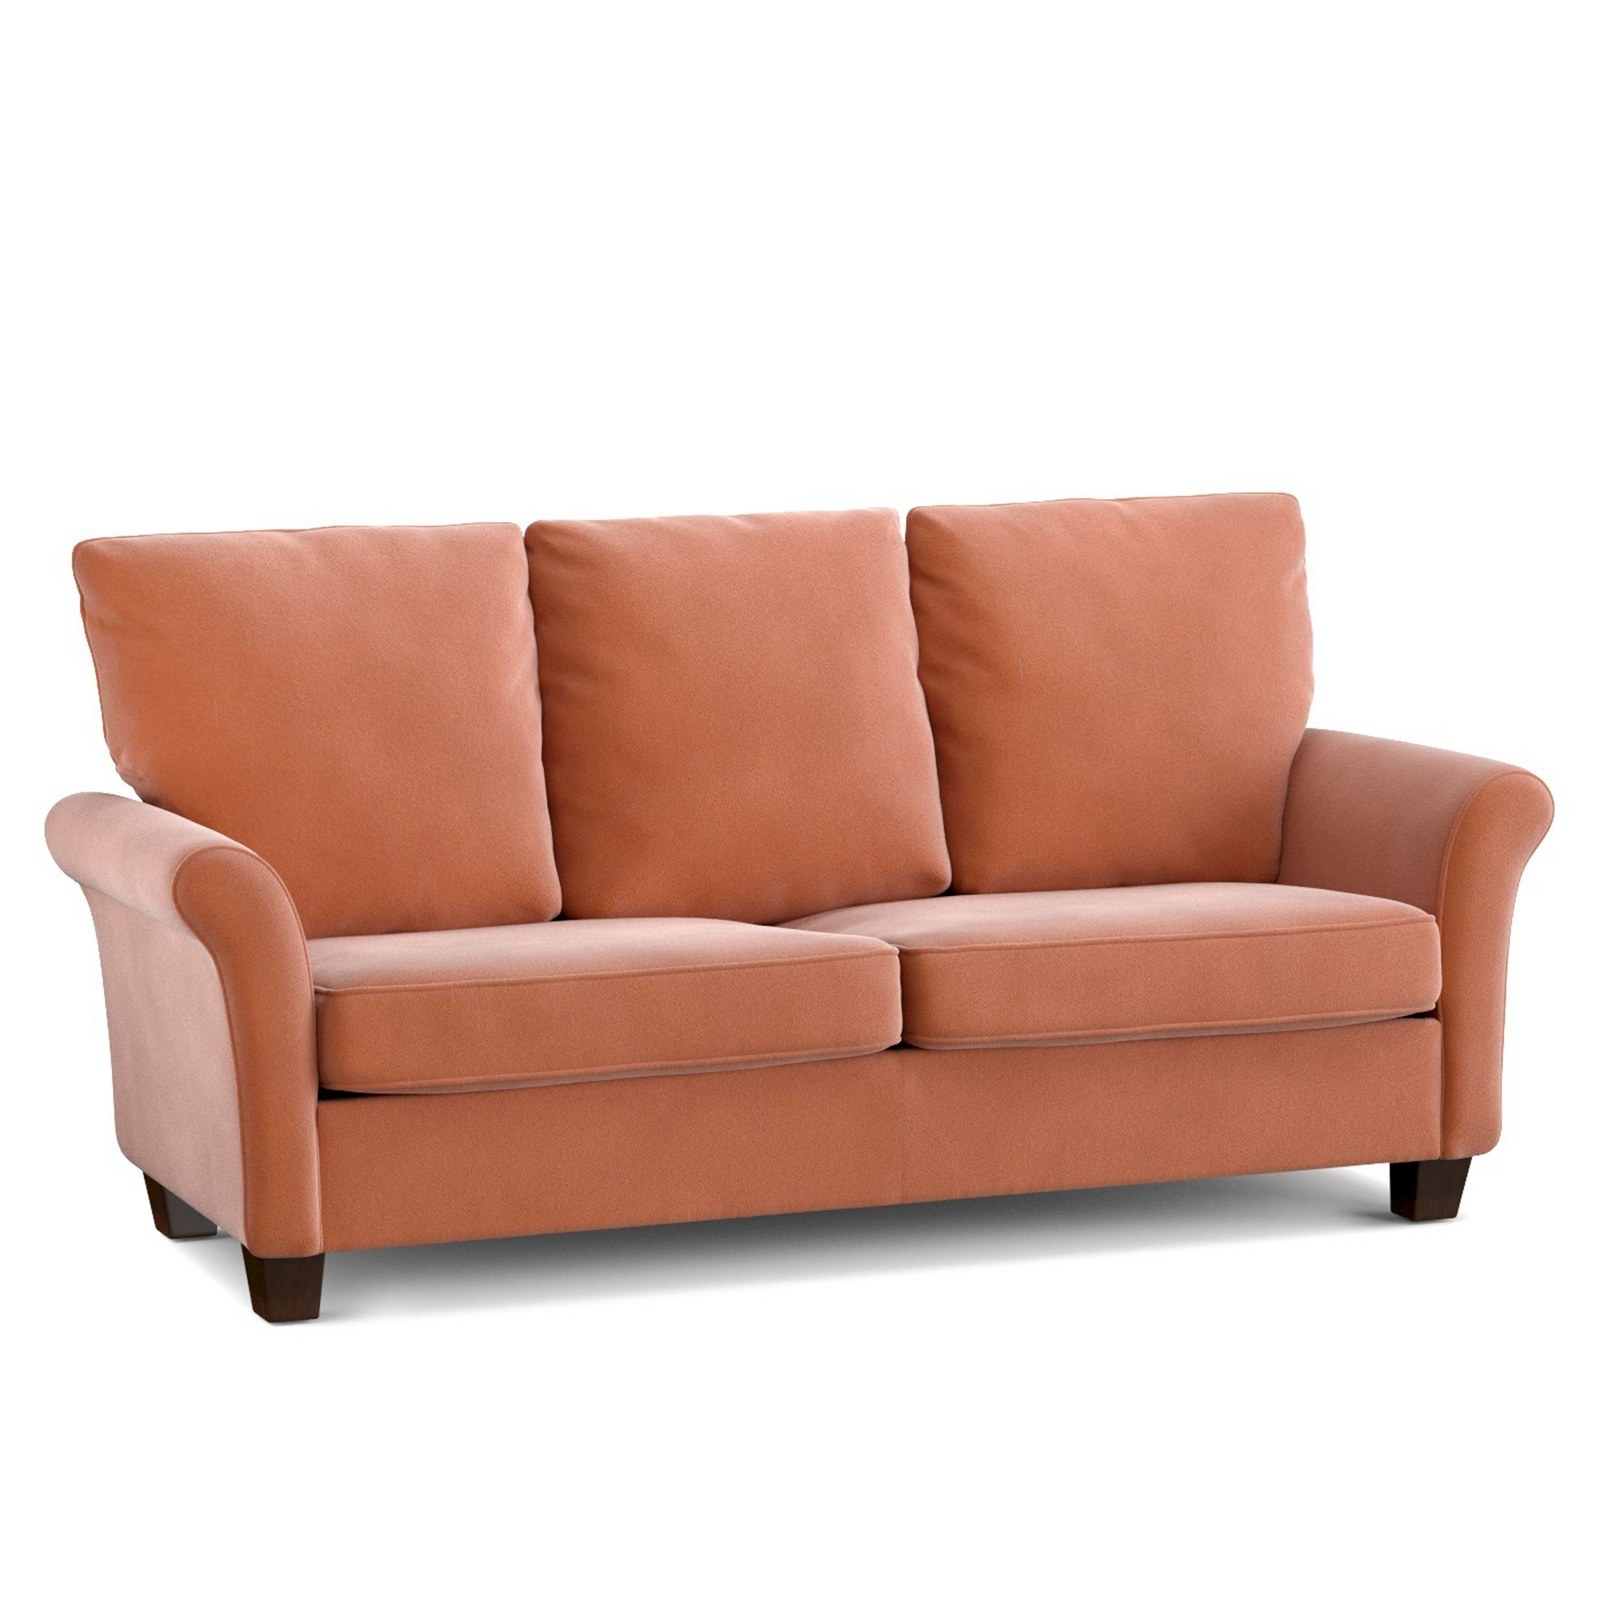 Inexpensive couches black sofa sets for masculin leather for Inexpensive quality furniture